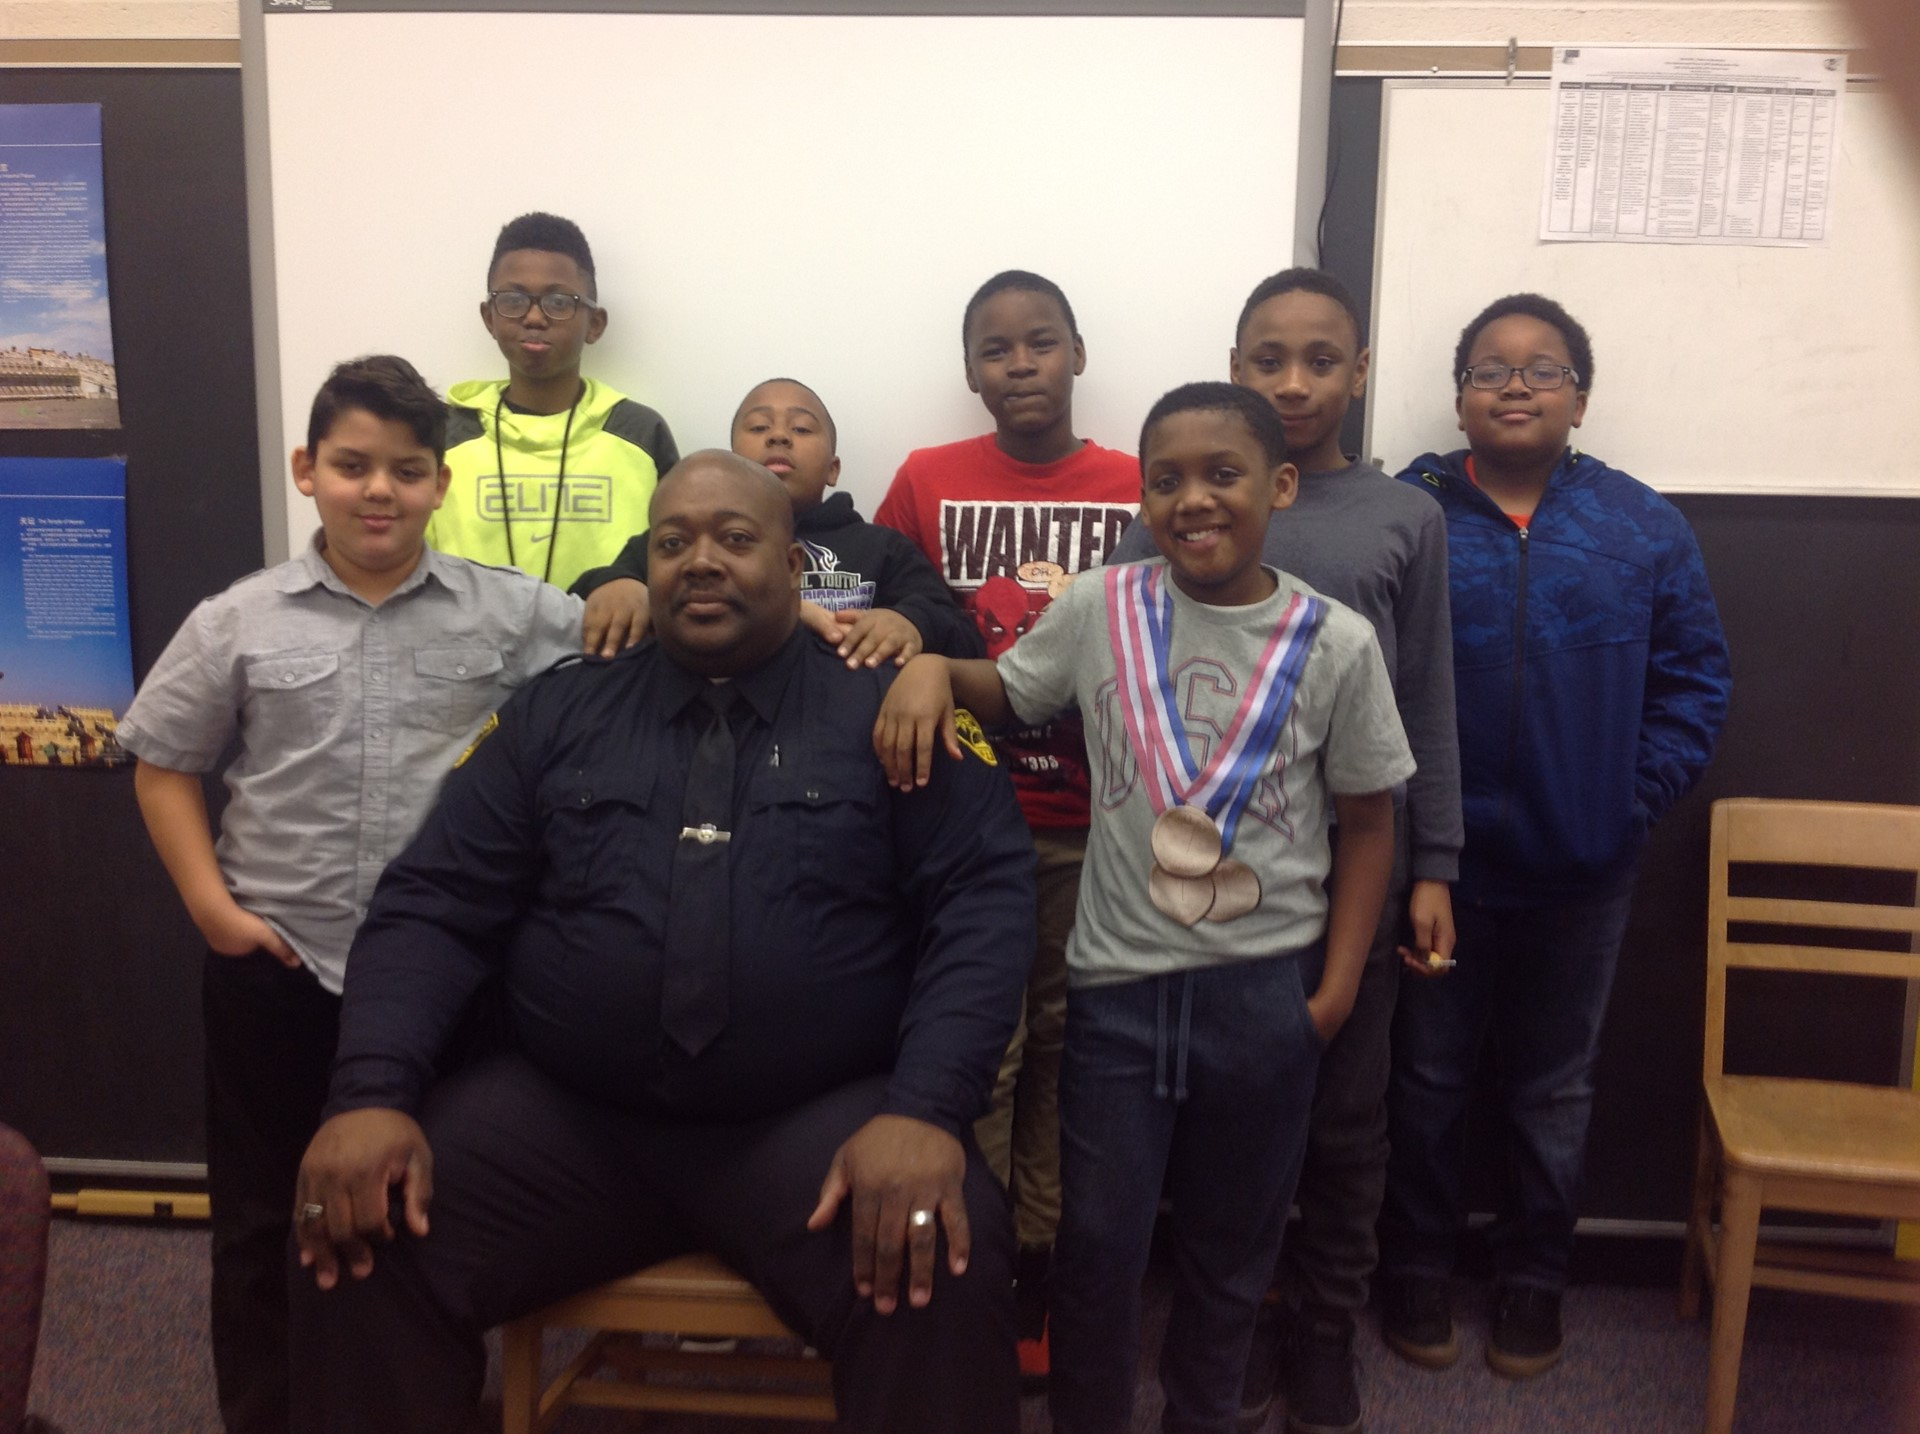 CHPD Officer Pitts with 5th Grade boys